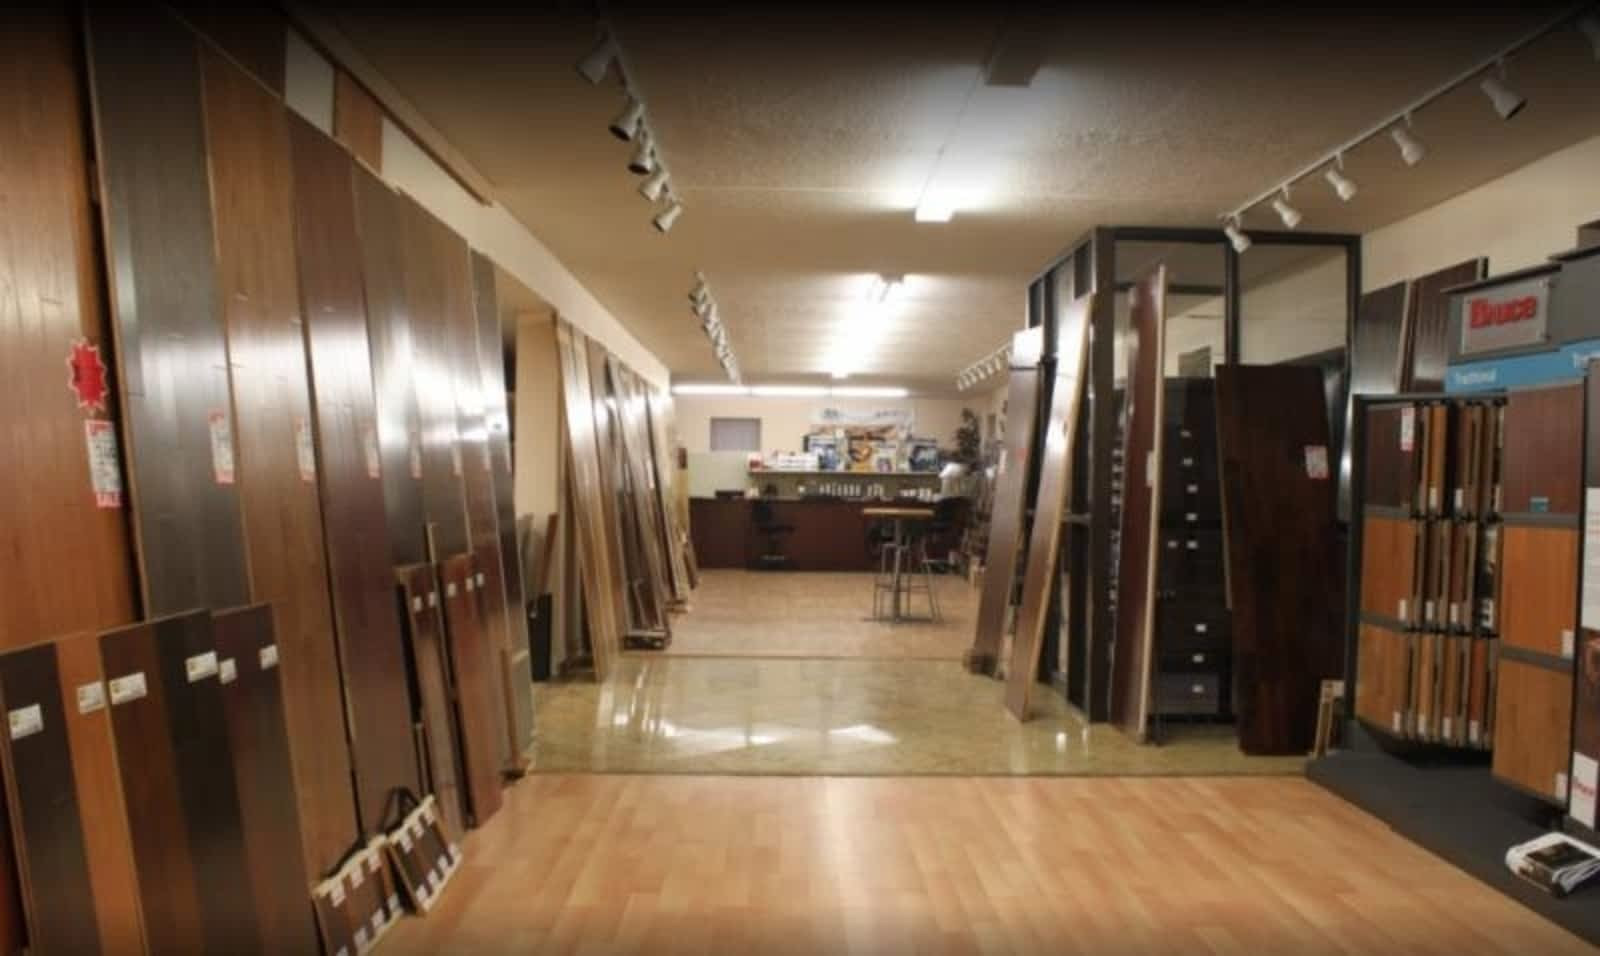 hardwood flooring ontario ca of aa floors and more opening hours 524 evans ave etobicoke on in aa floors and more 5